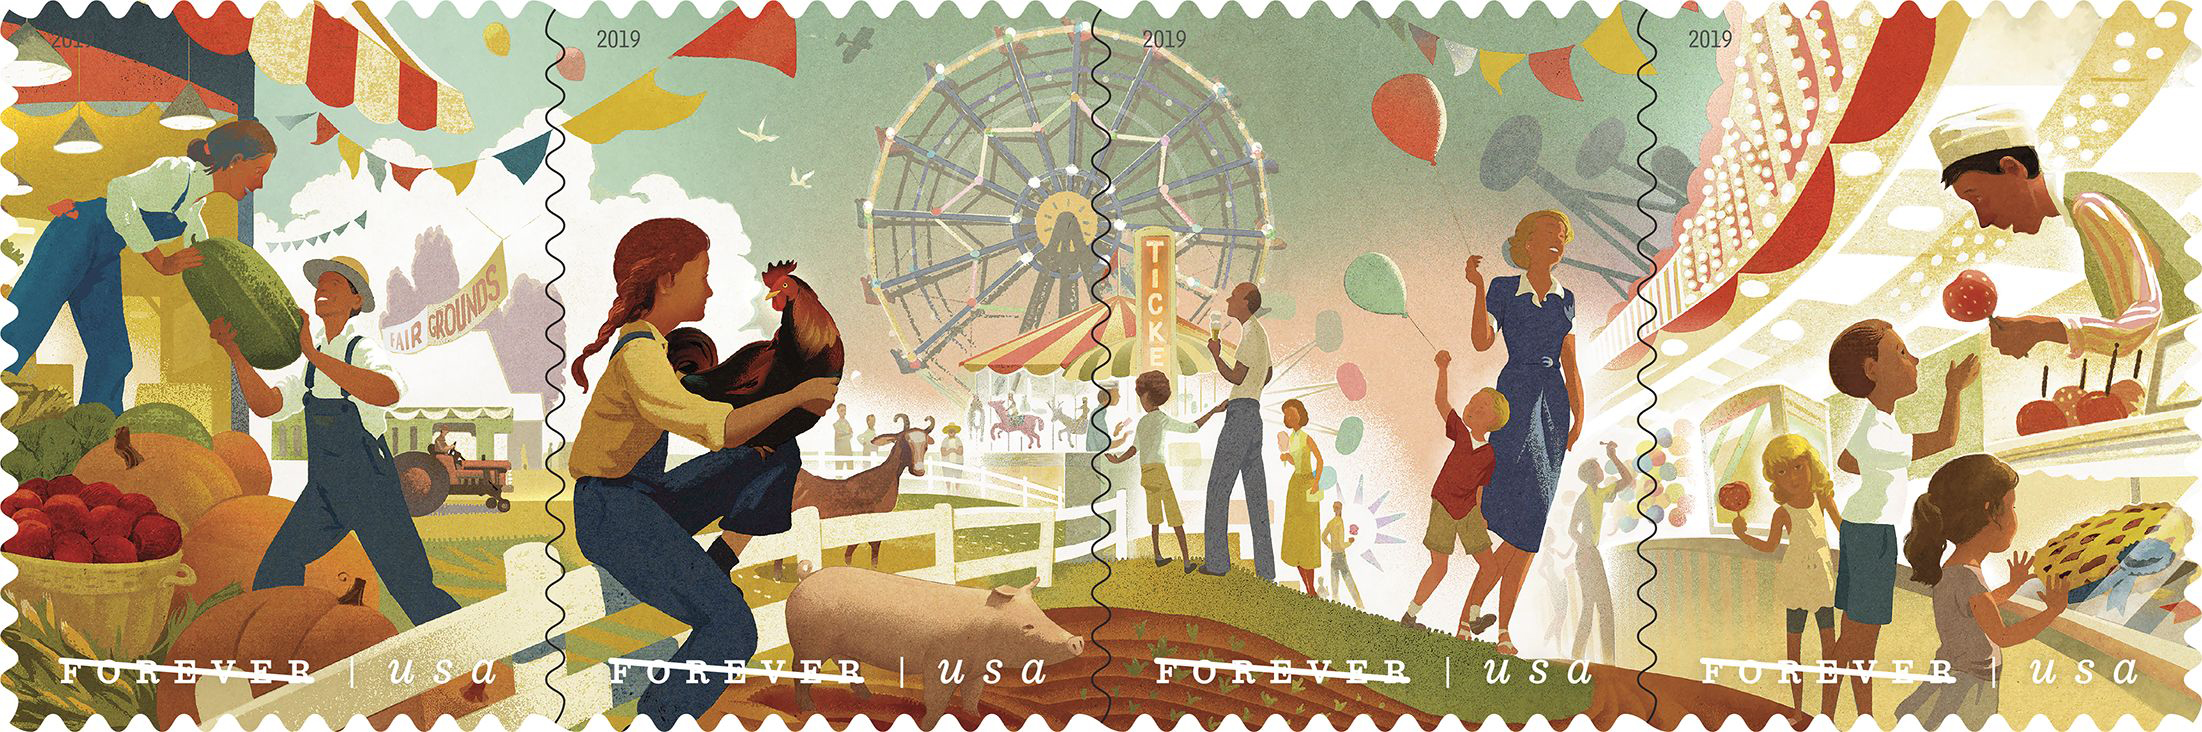 2019 US new stamp issues